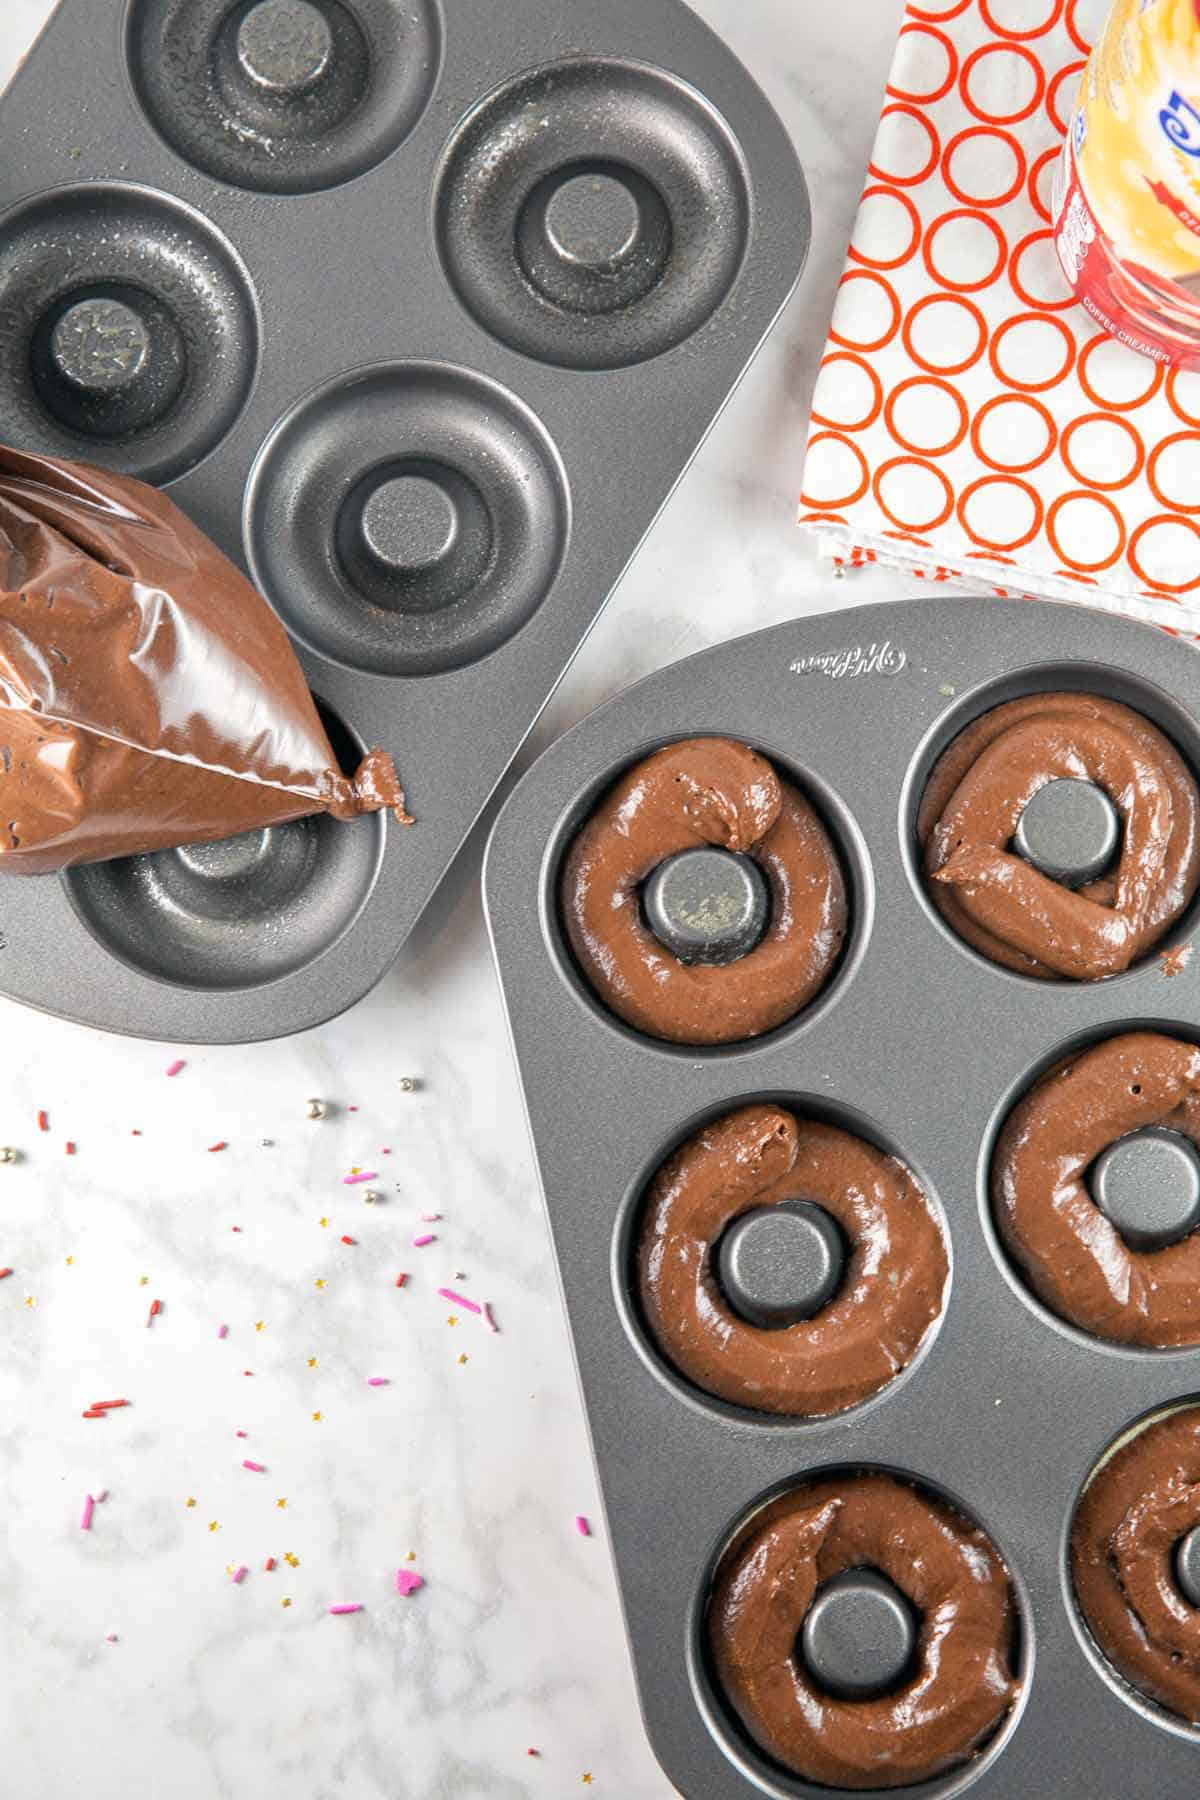 piping chocolate donut batter into a donut pan for baked peppermint mocha donuts